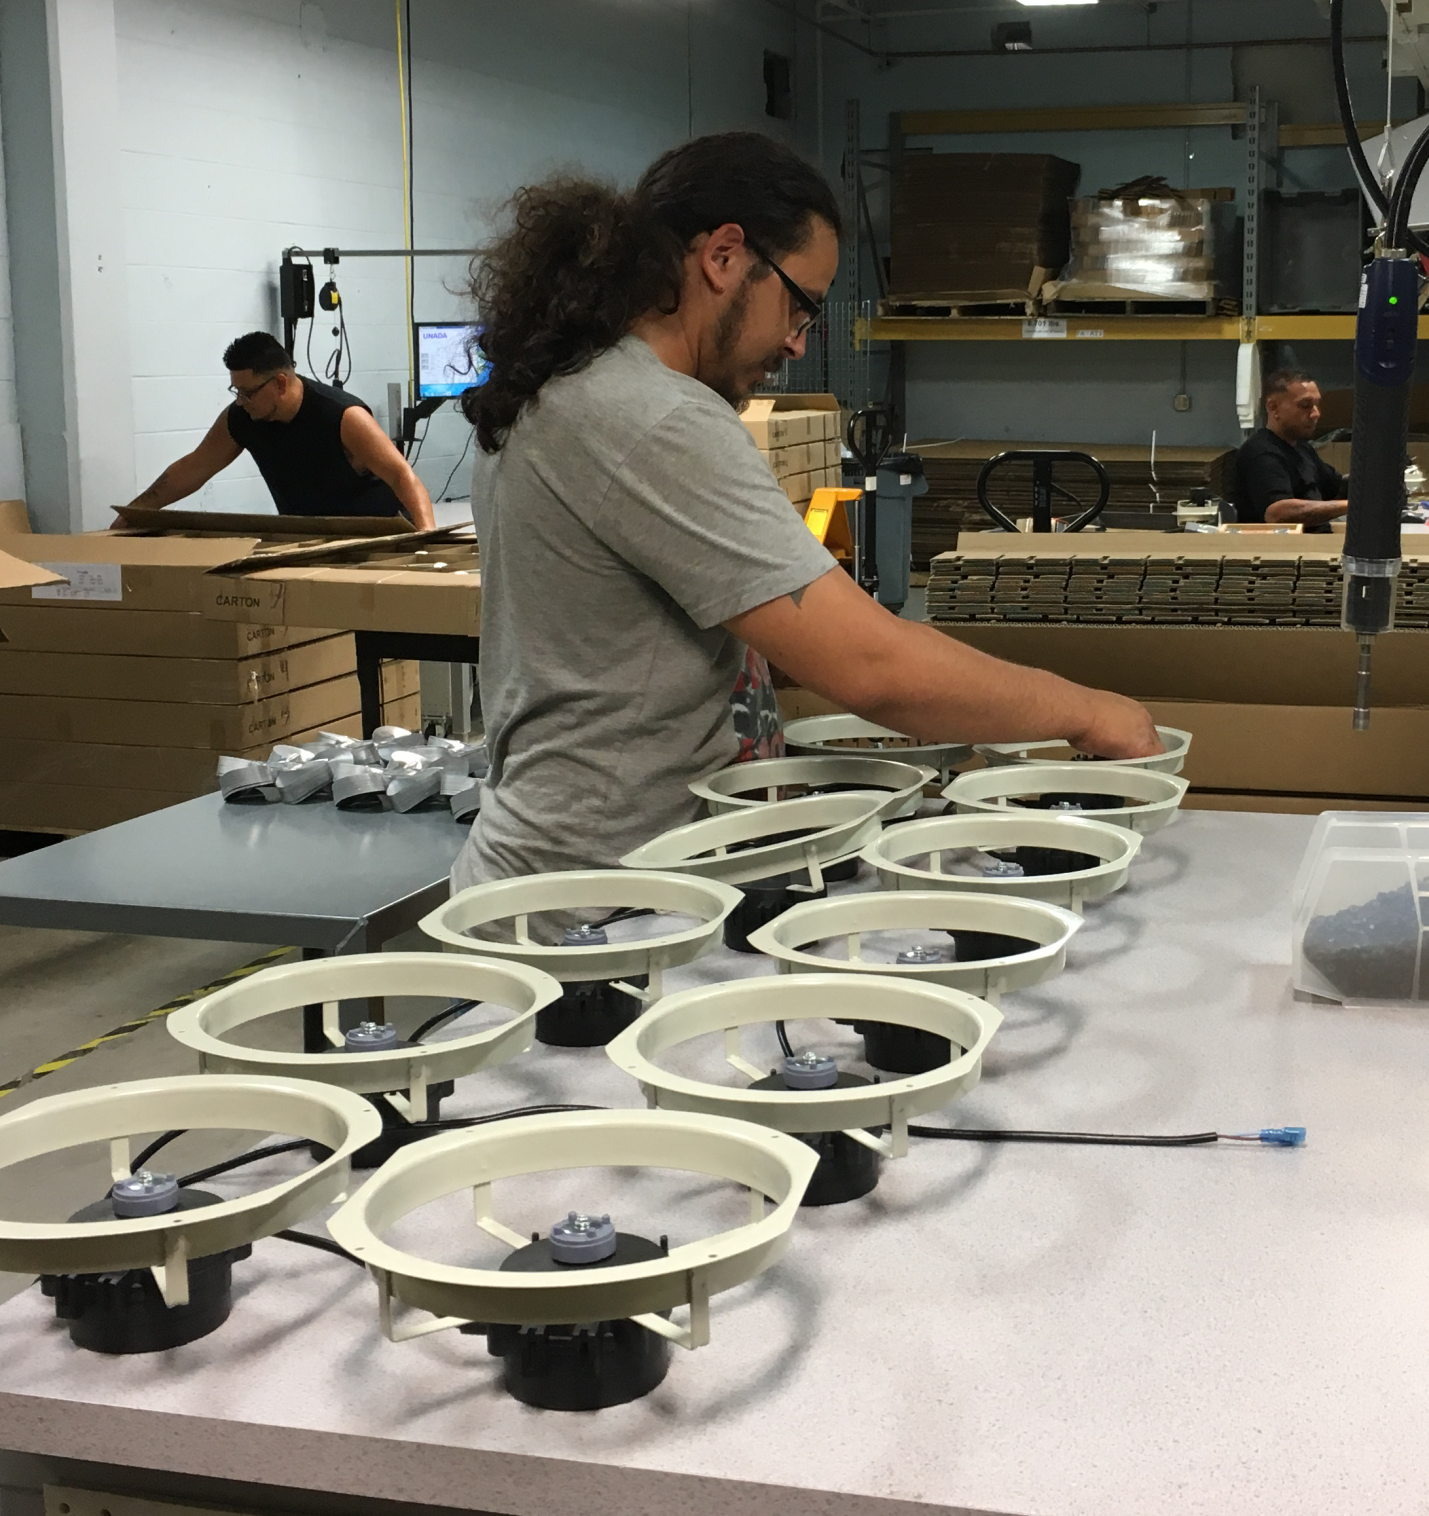 Employee Assembling EC Motor with Fan Ring and Blade